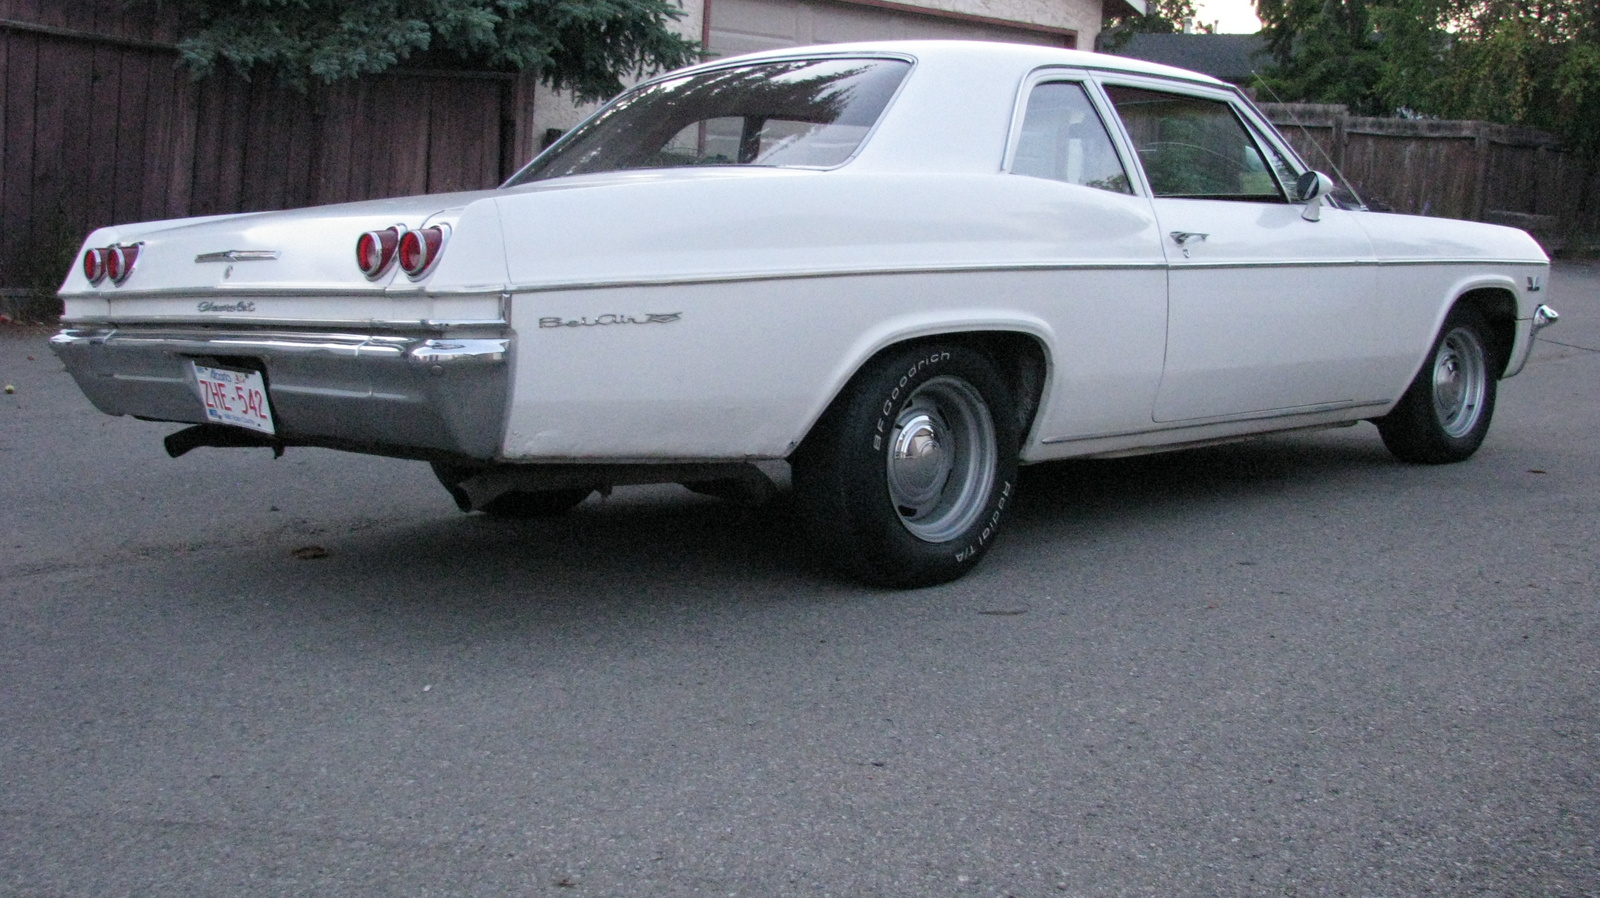 1965 Chevrolet Bel Air picture, exterior